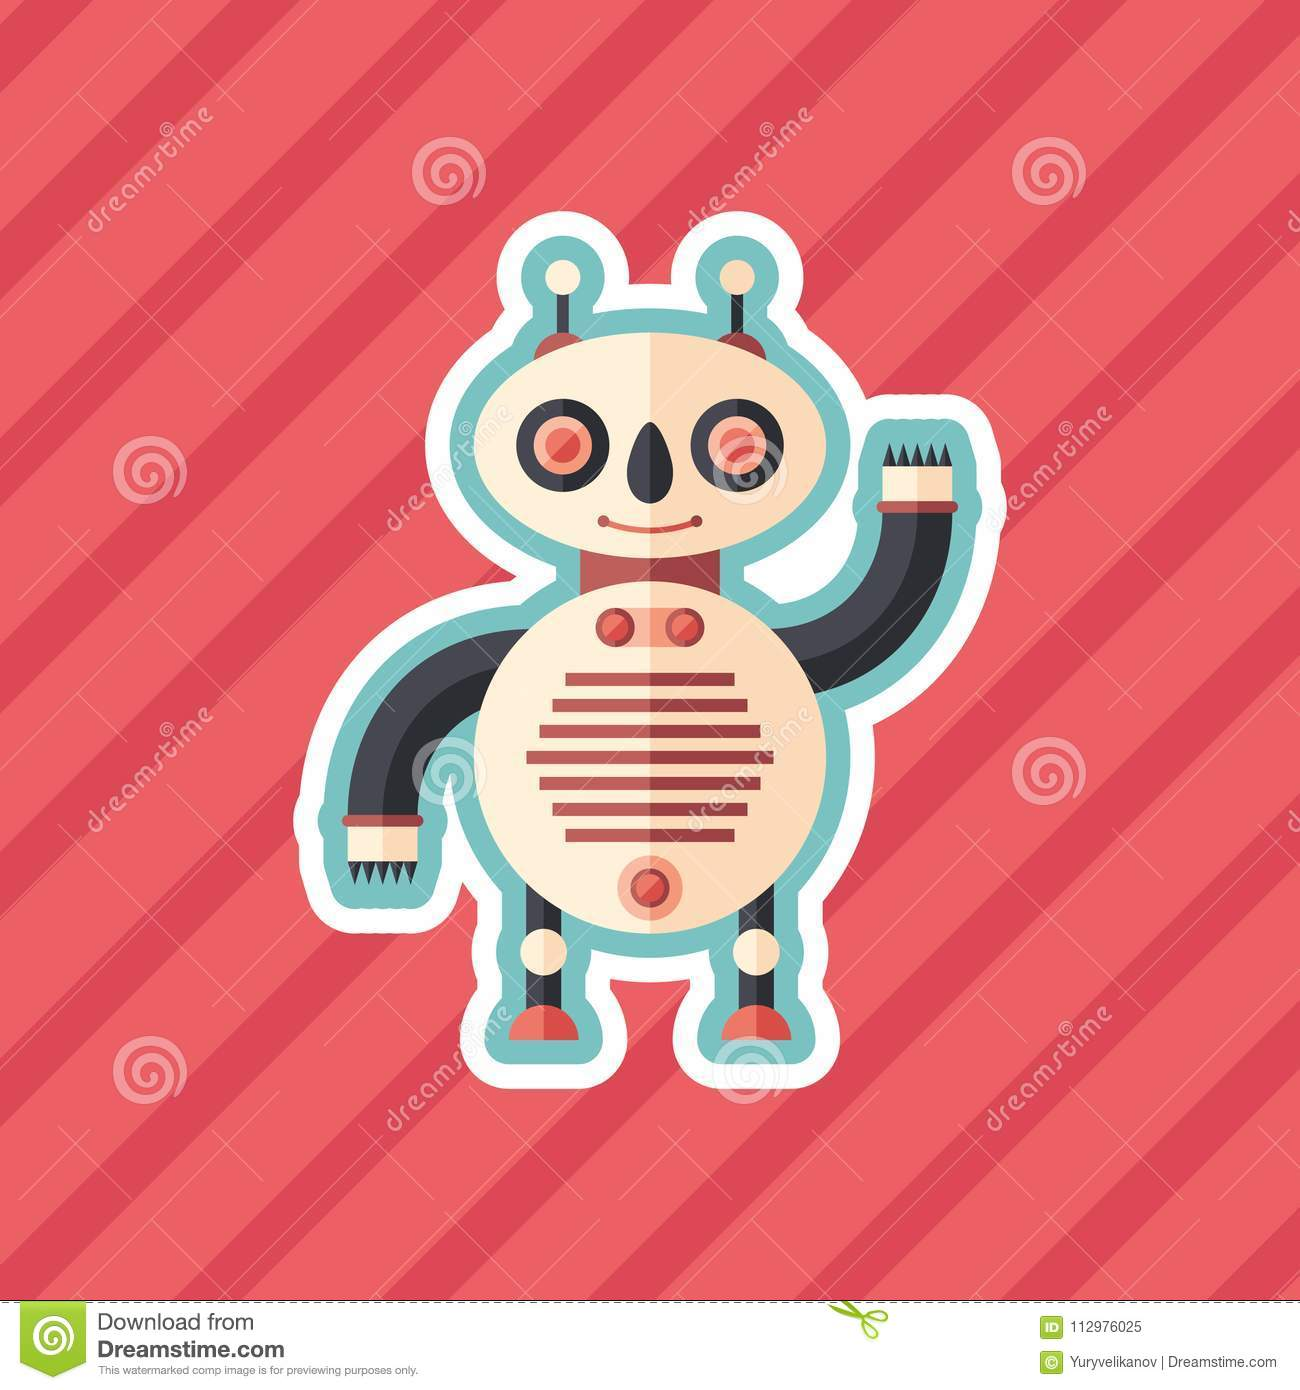 Panda robot sticker flat icon with color background.